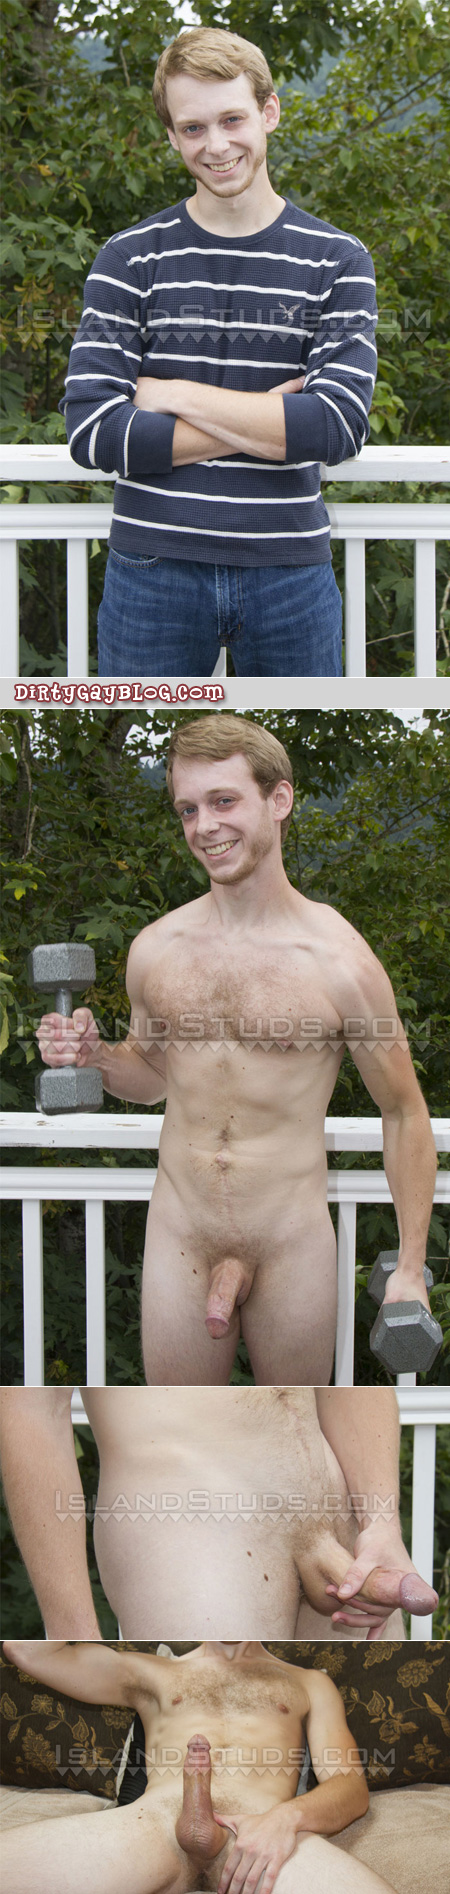 Ginger male nude outdoors